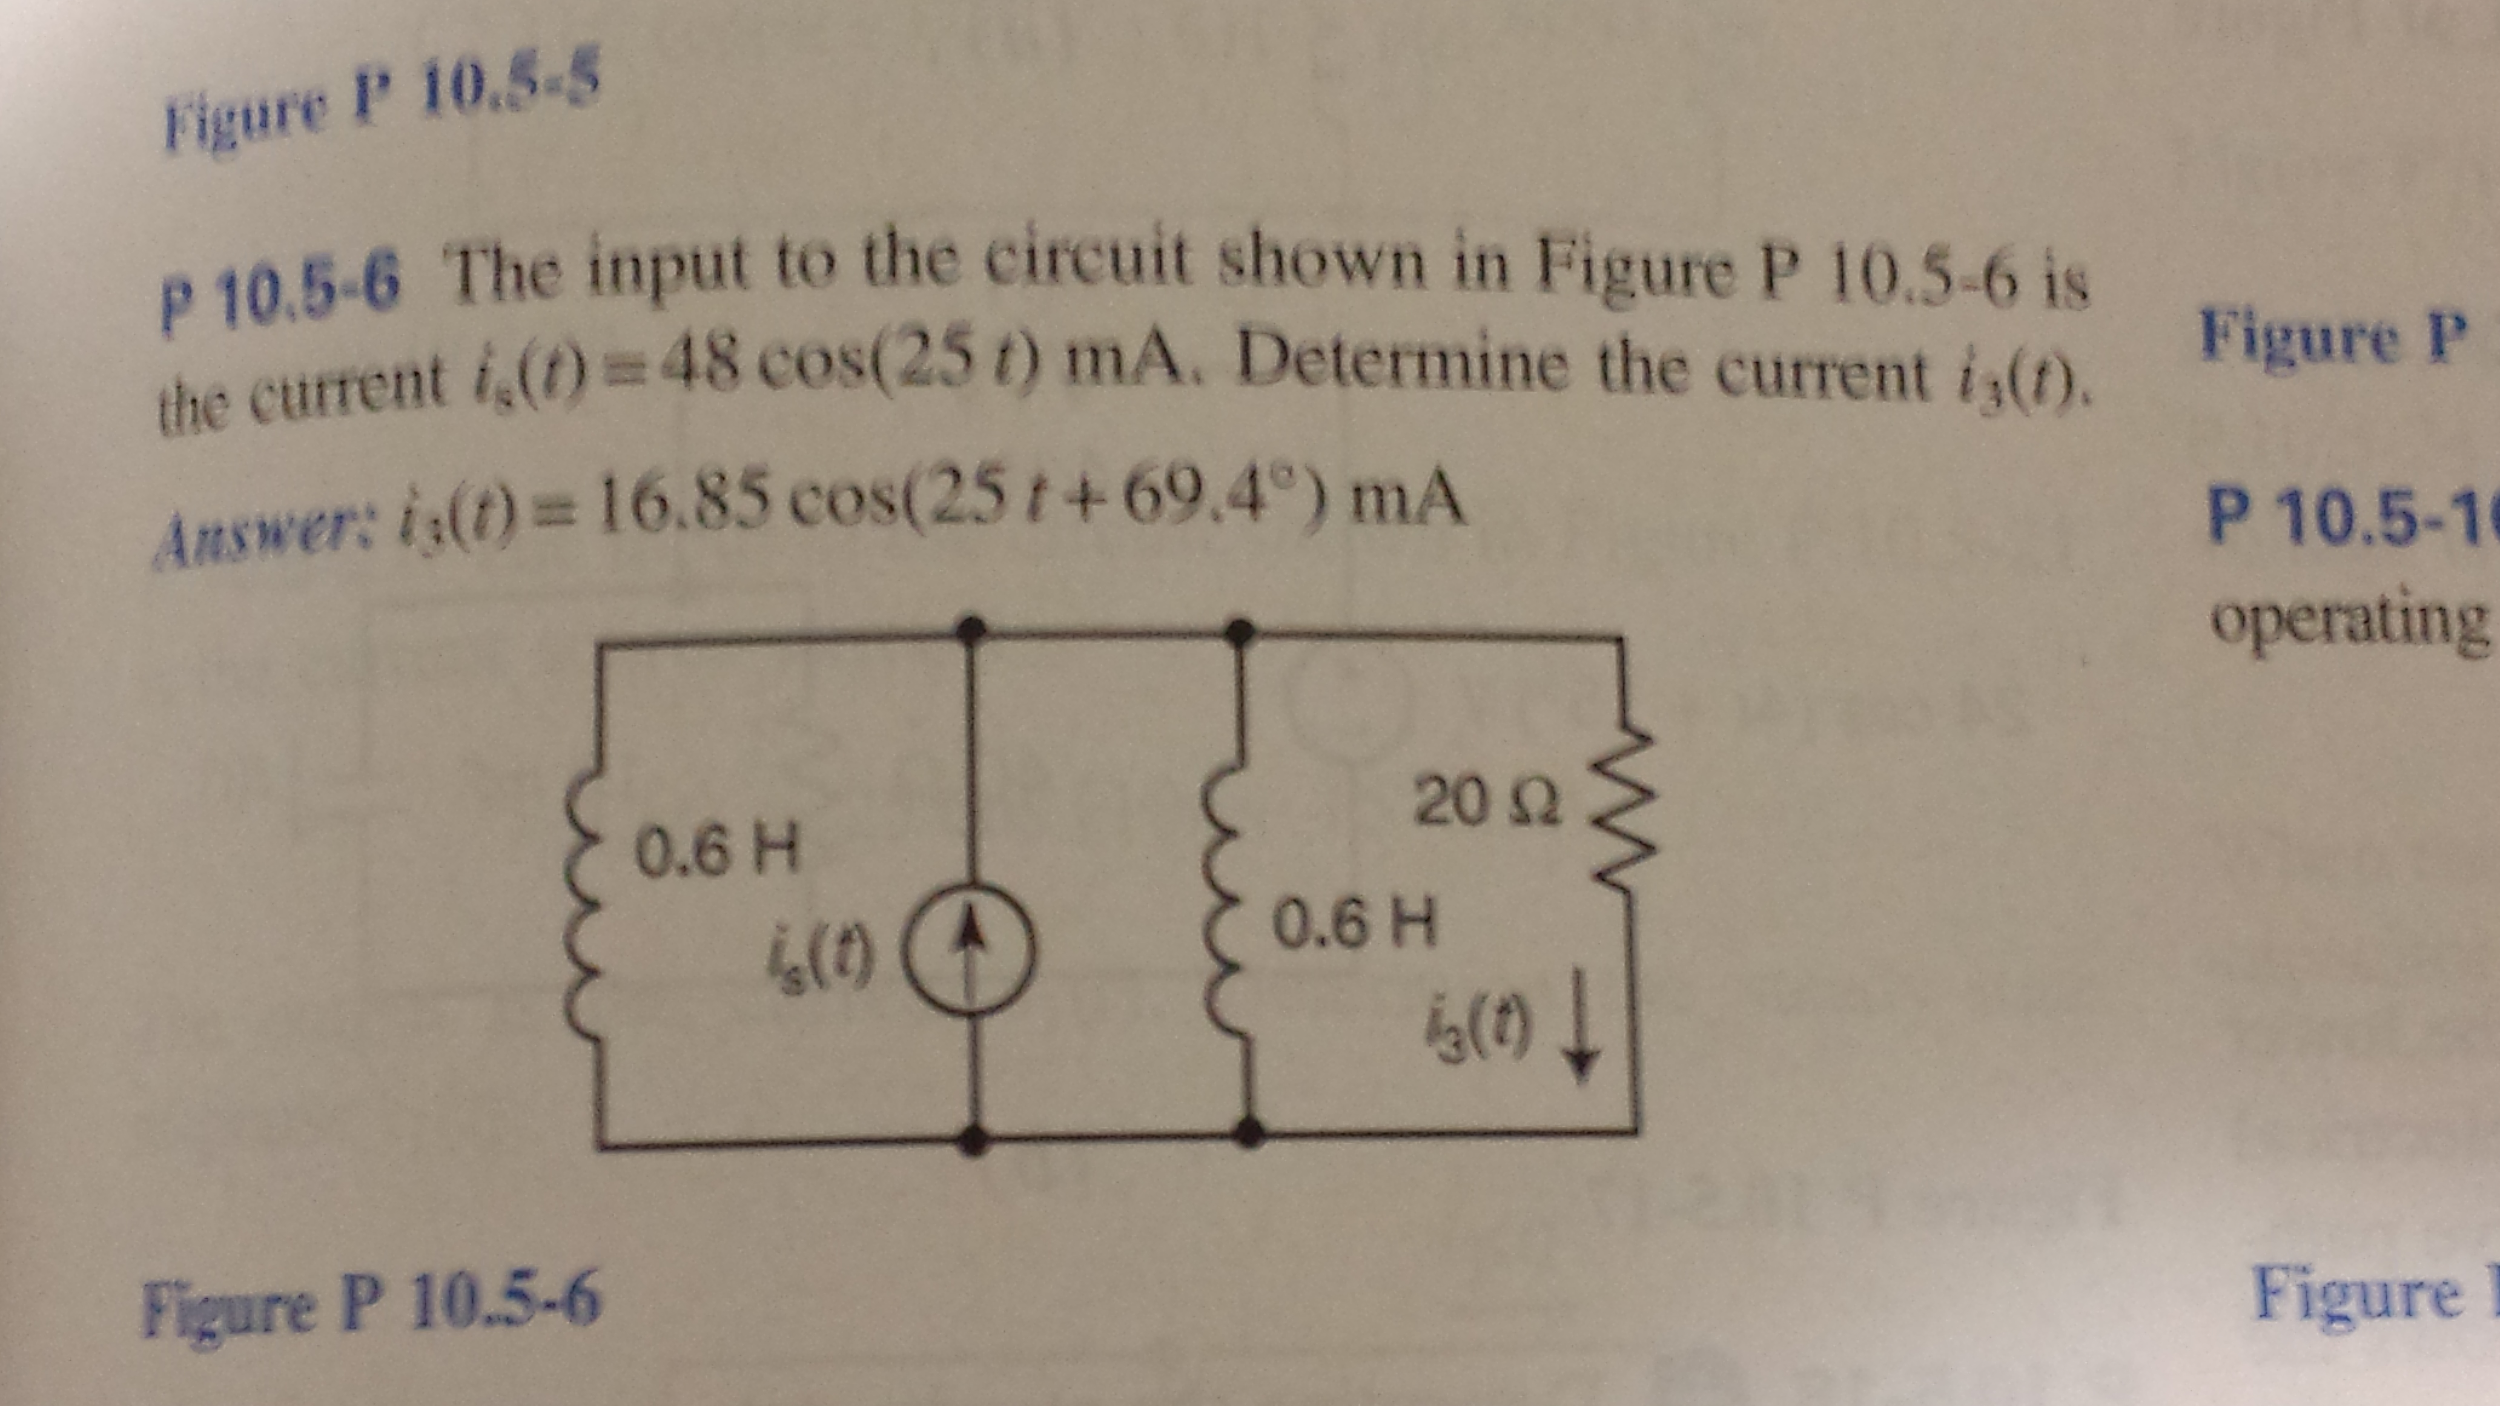 The input to the circuit shown in Figure p 10.5-6